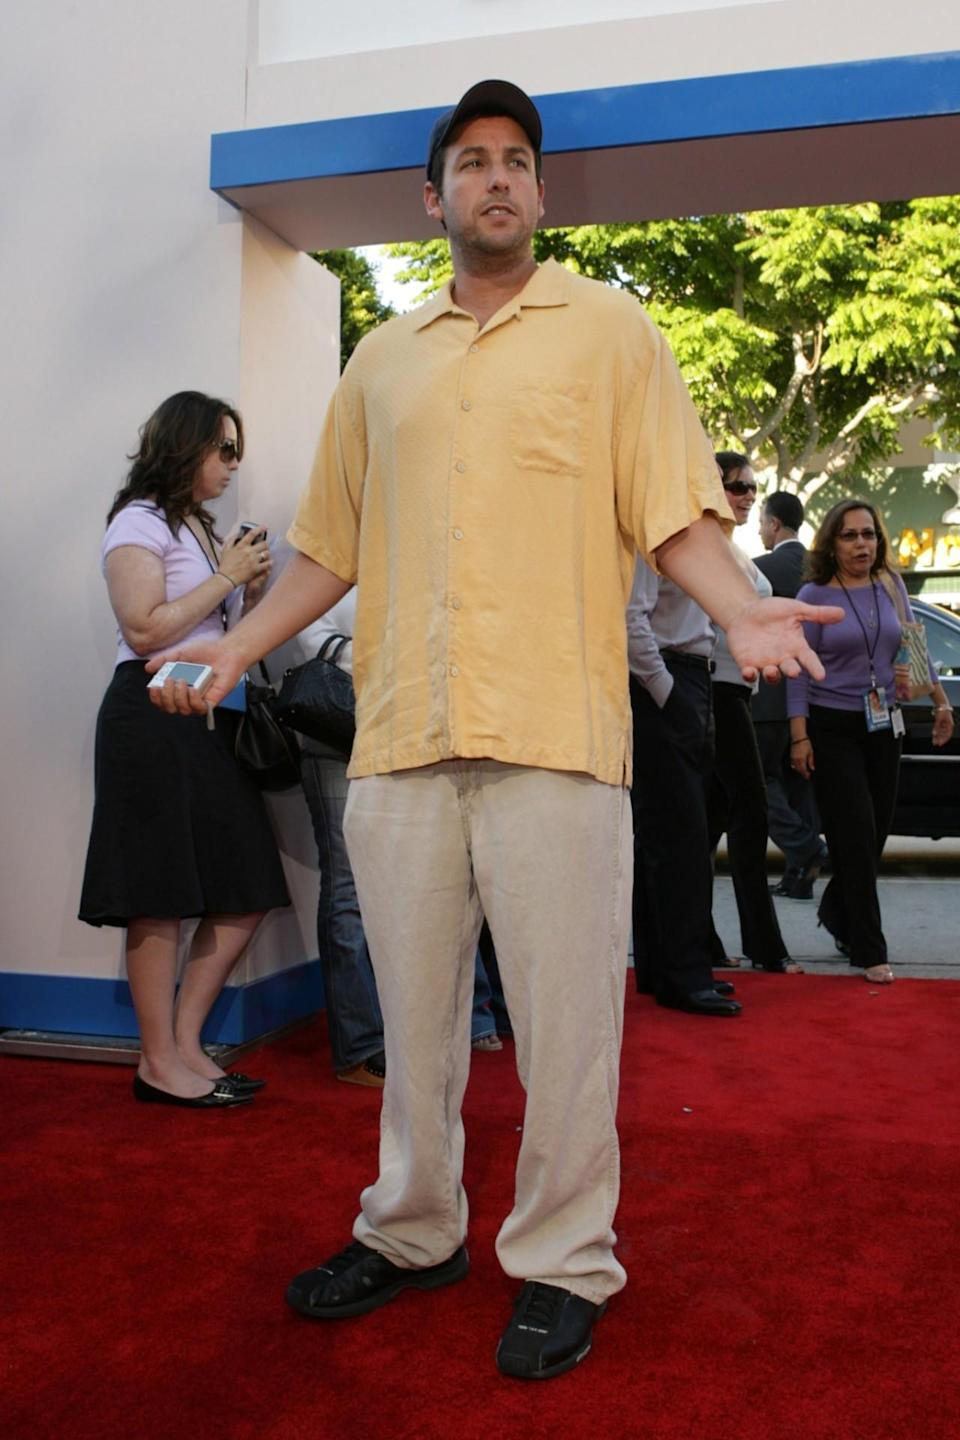 <p>He pulled off some grandpa cosplay at the Hollywood premiere of <i>Click</i> in 2006. (Photo: E. Charbonneau/WireImage for Sony Pictures)</p>